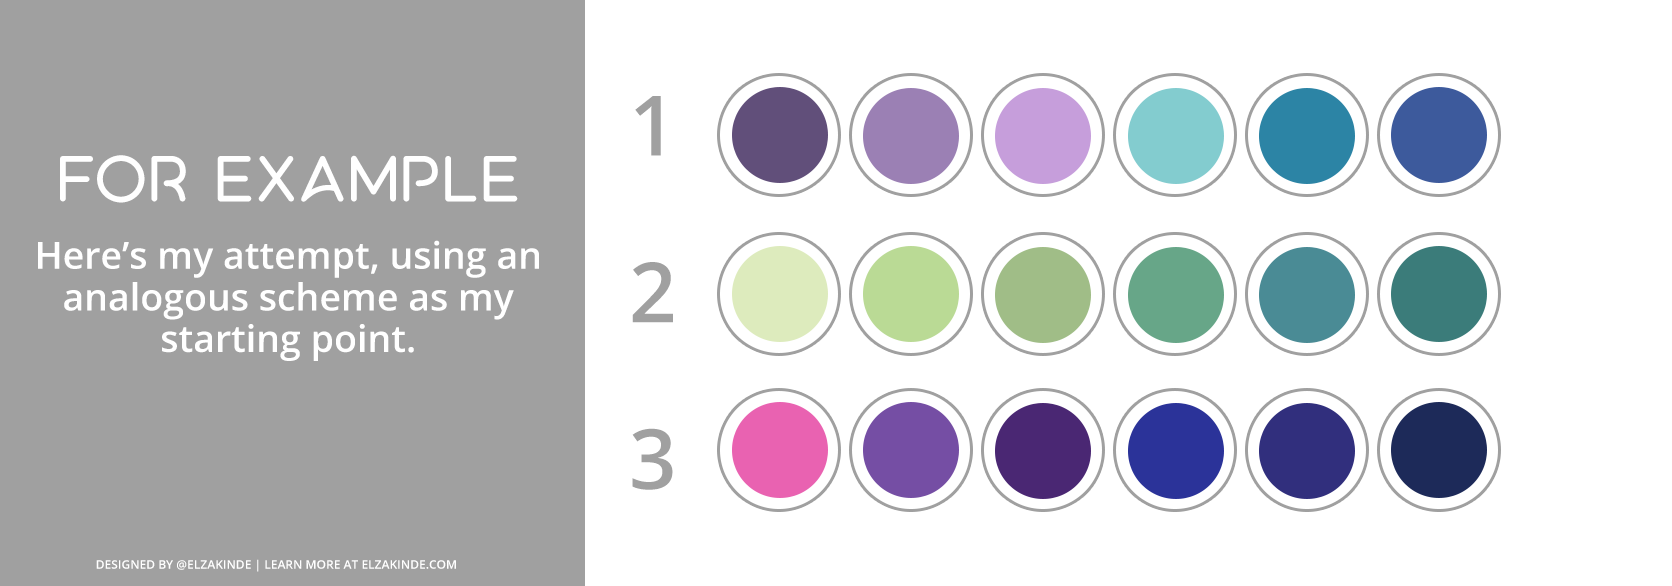 """Graphic features a gray box with text reading """"For Example: Here's my attempt, using an analogous scheme as my starting point."""" To the right, three palettes using the worksheet above. The first features the a palette using eggplant, lavender, robin's egg blue, teal, and royal blue. The second ranges from spring green, green apple, sage, jade, blue-green, and pine. The third palette features magenta, grape, eggplant, midnight blue, navy, and prussian blue."""